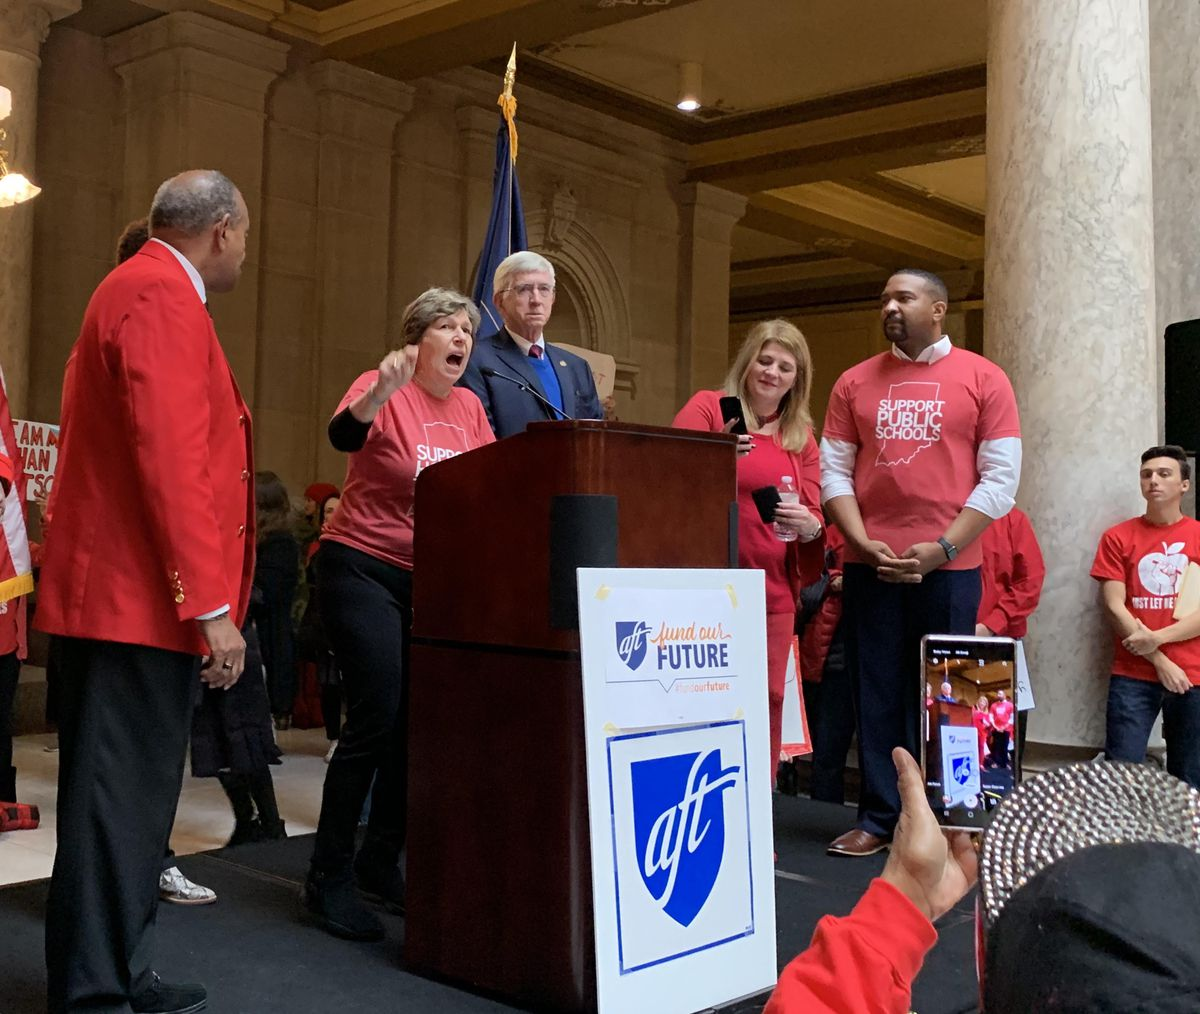 American Federation of Teachers President Randi Weingarten addresses a crowd of Red For Ed rally participants at the Indiana Statehouse on Nov. 19, 2019.